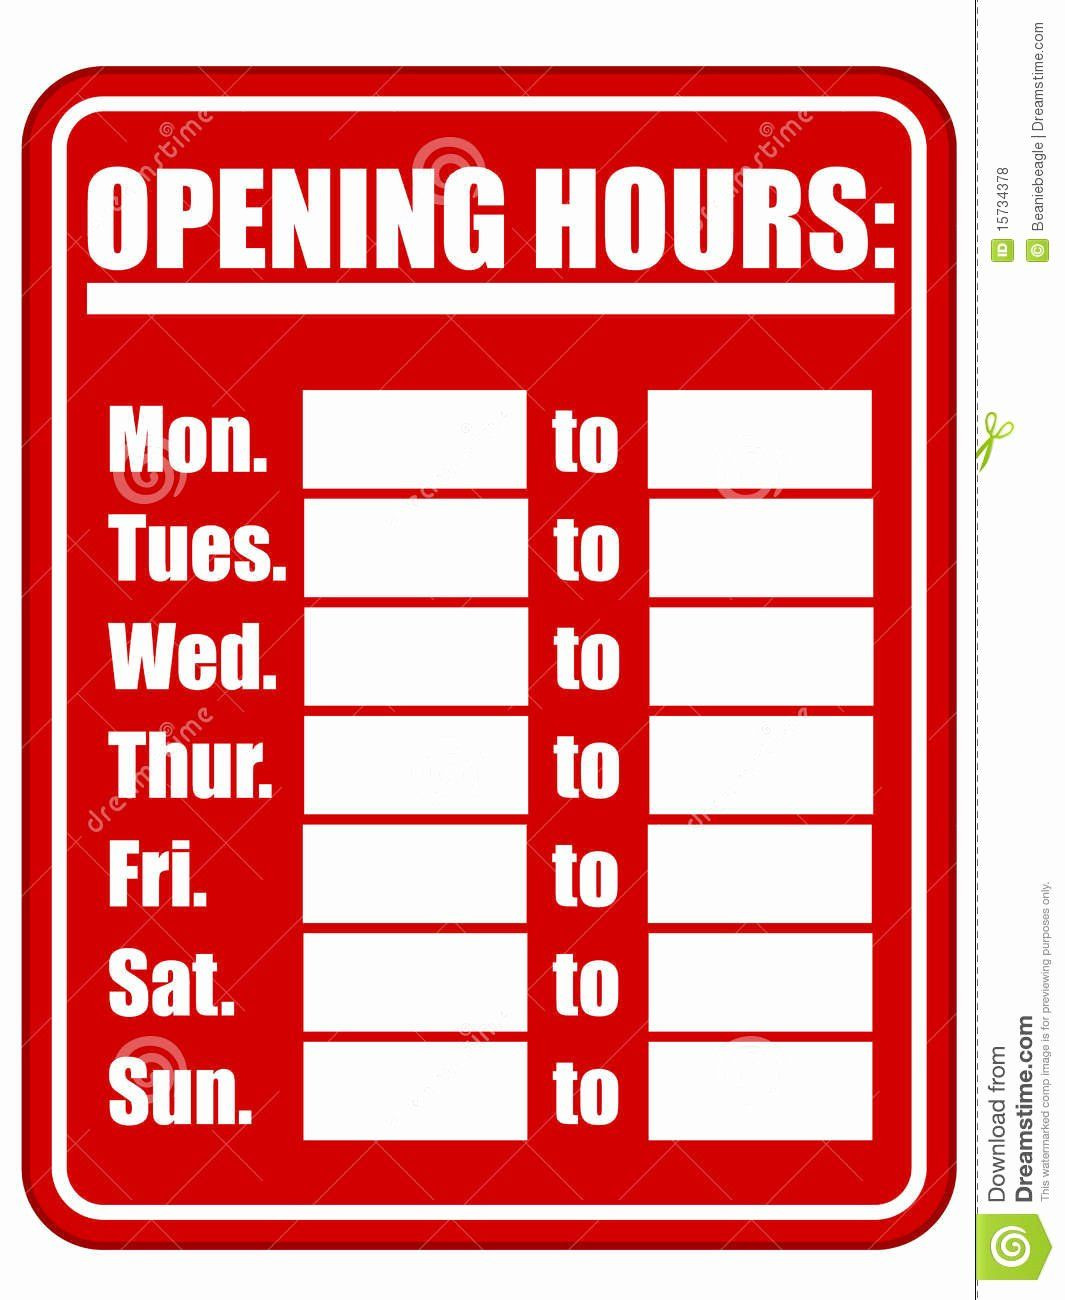 Business Hours Sign Template Awesome Opening Hours Sign Eps